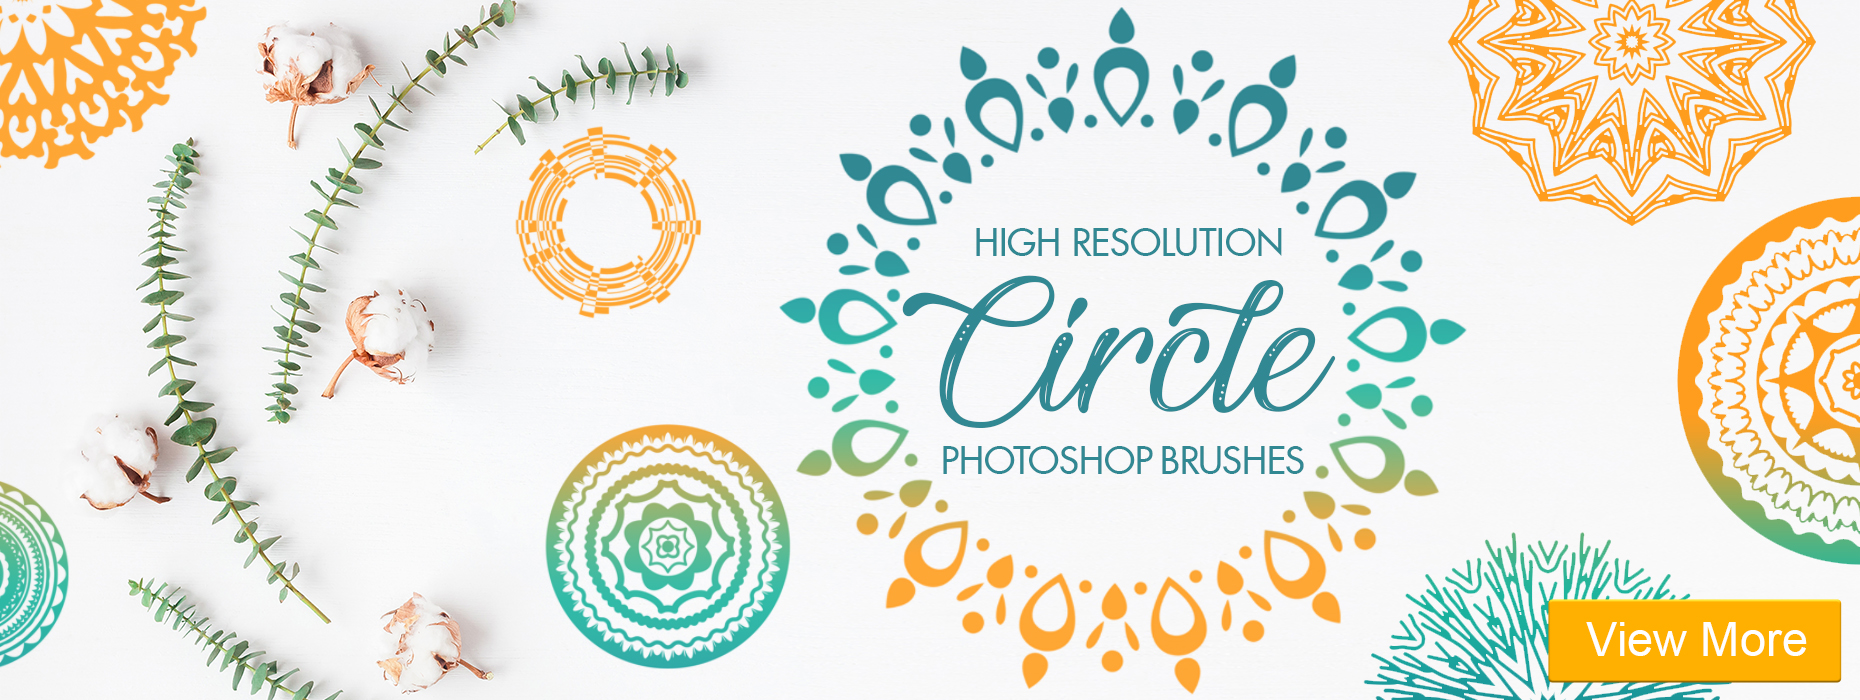 free watercolor brushes photoshop high resolution photoshop circle brushes banner